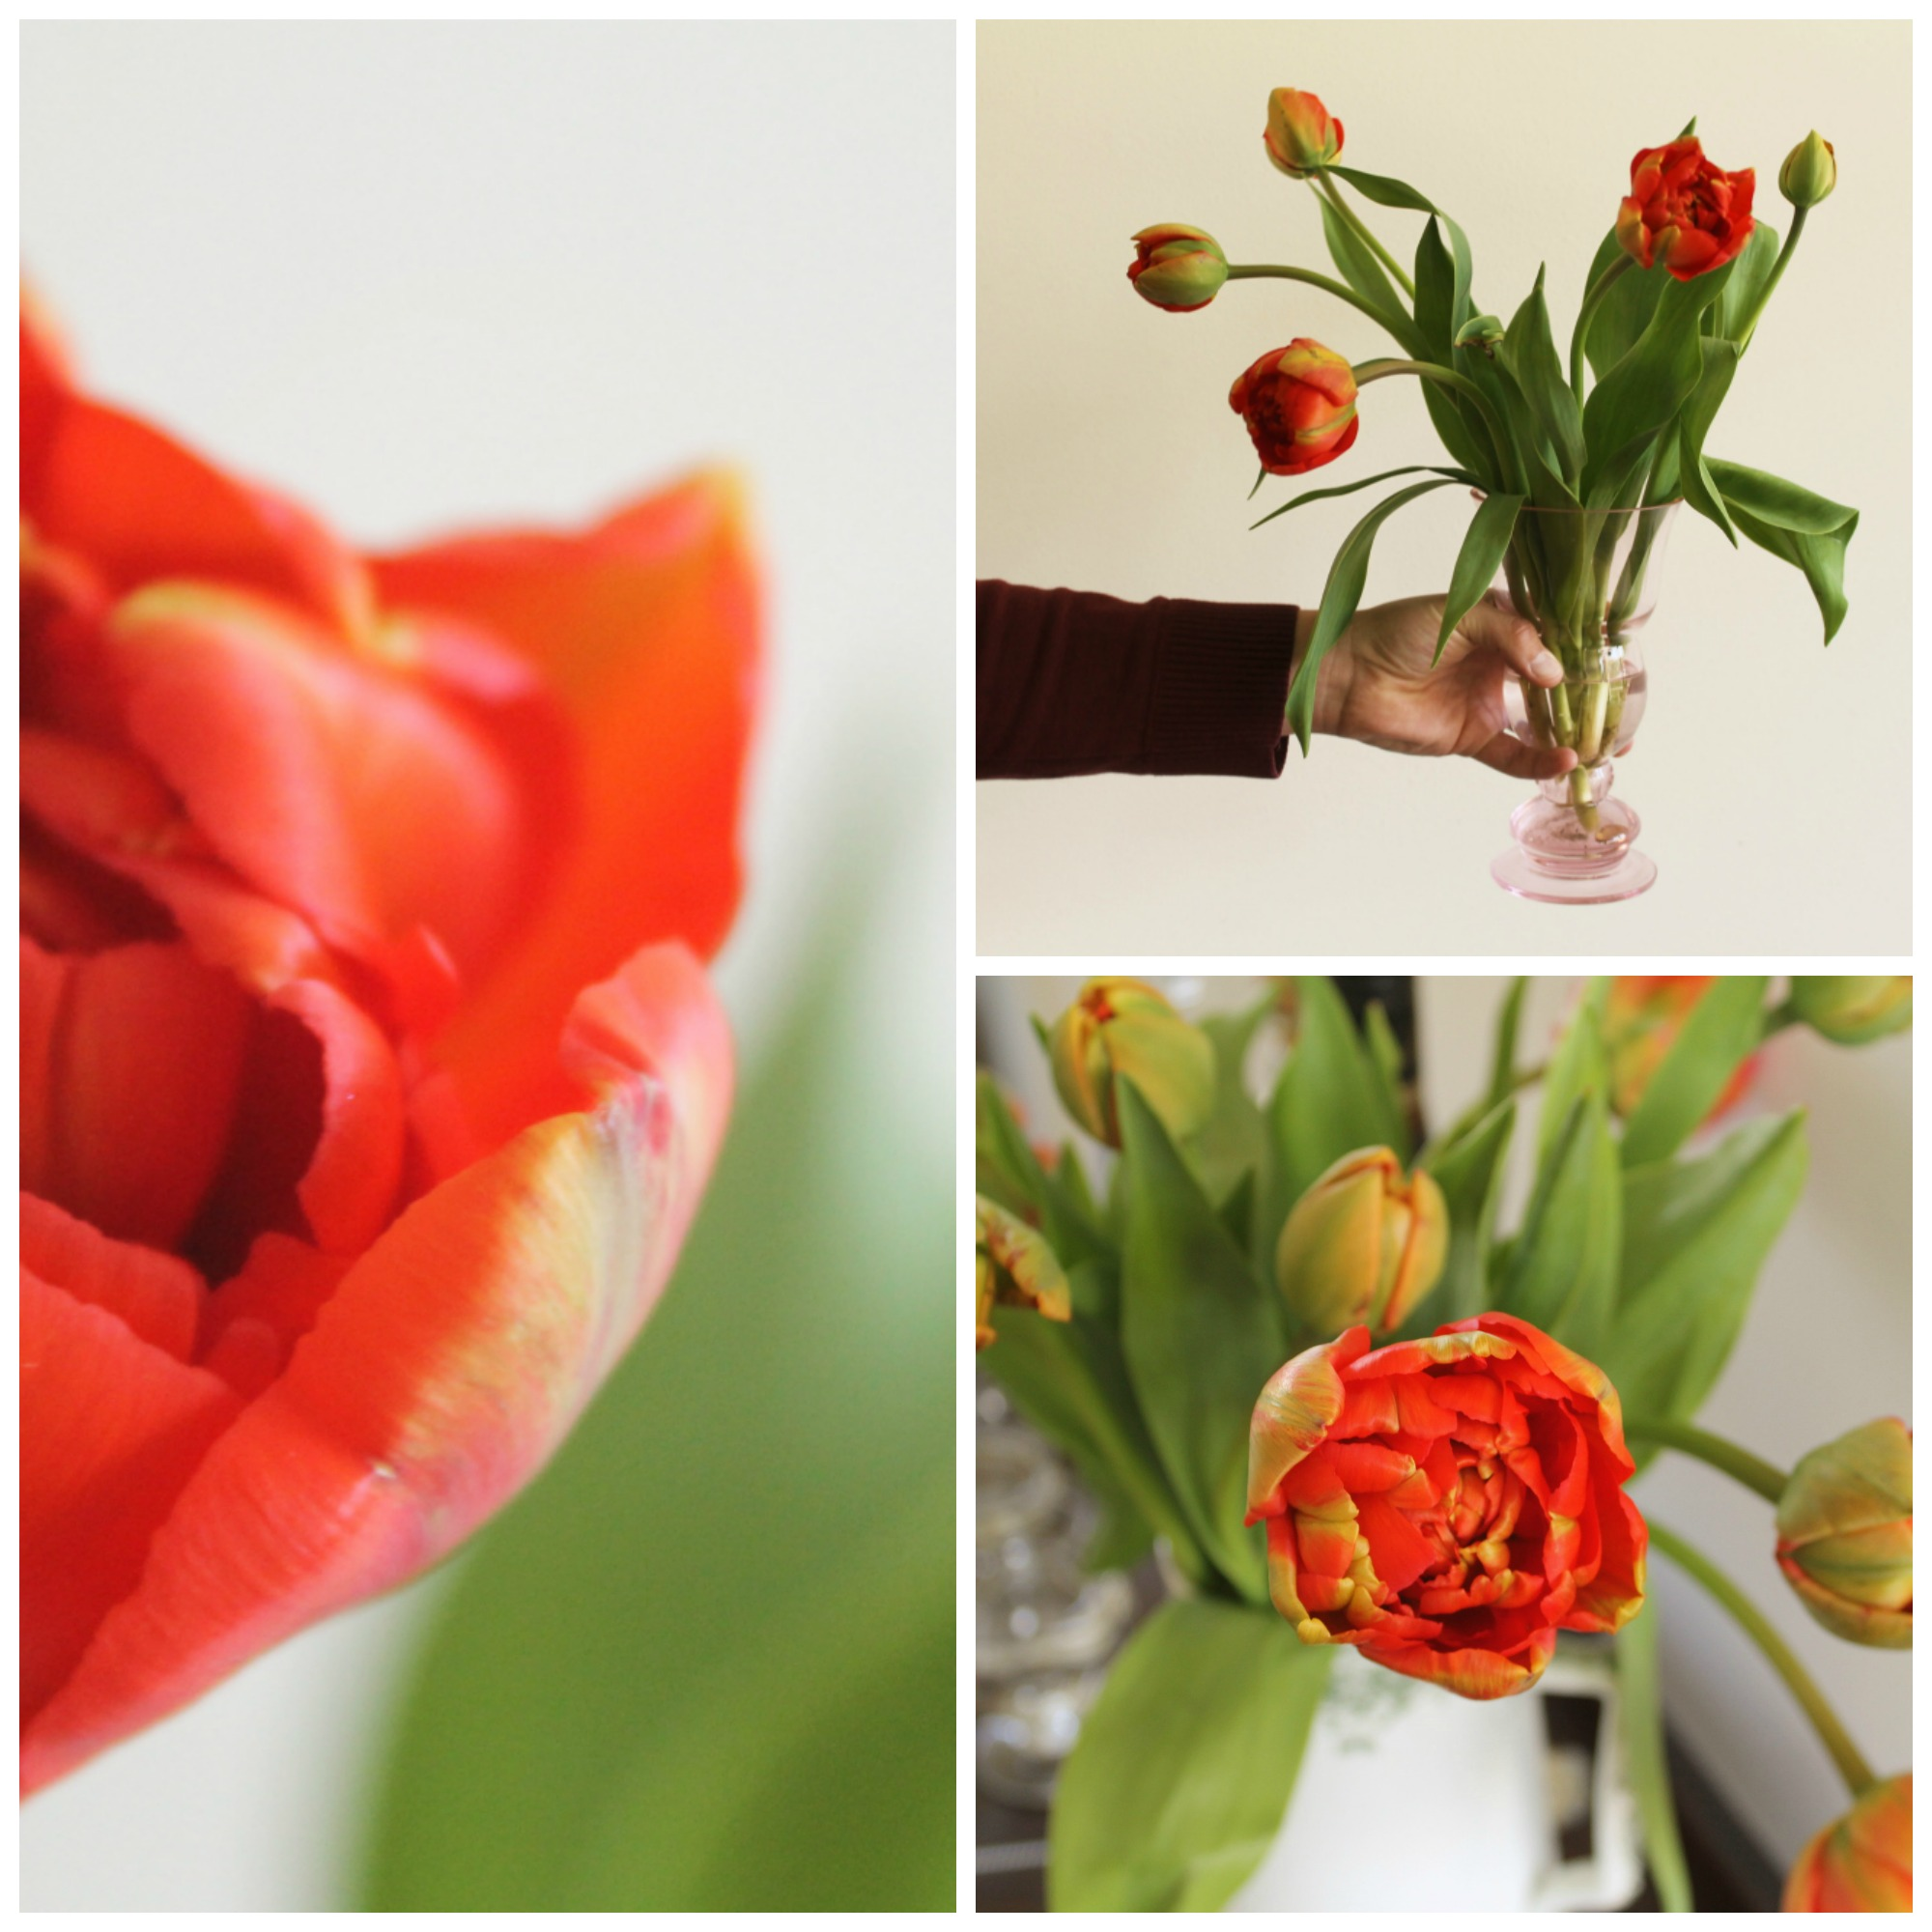 April recap: Kingsday orange tulips - http://weirdatheart.com/april-recap/